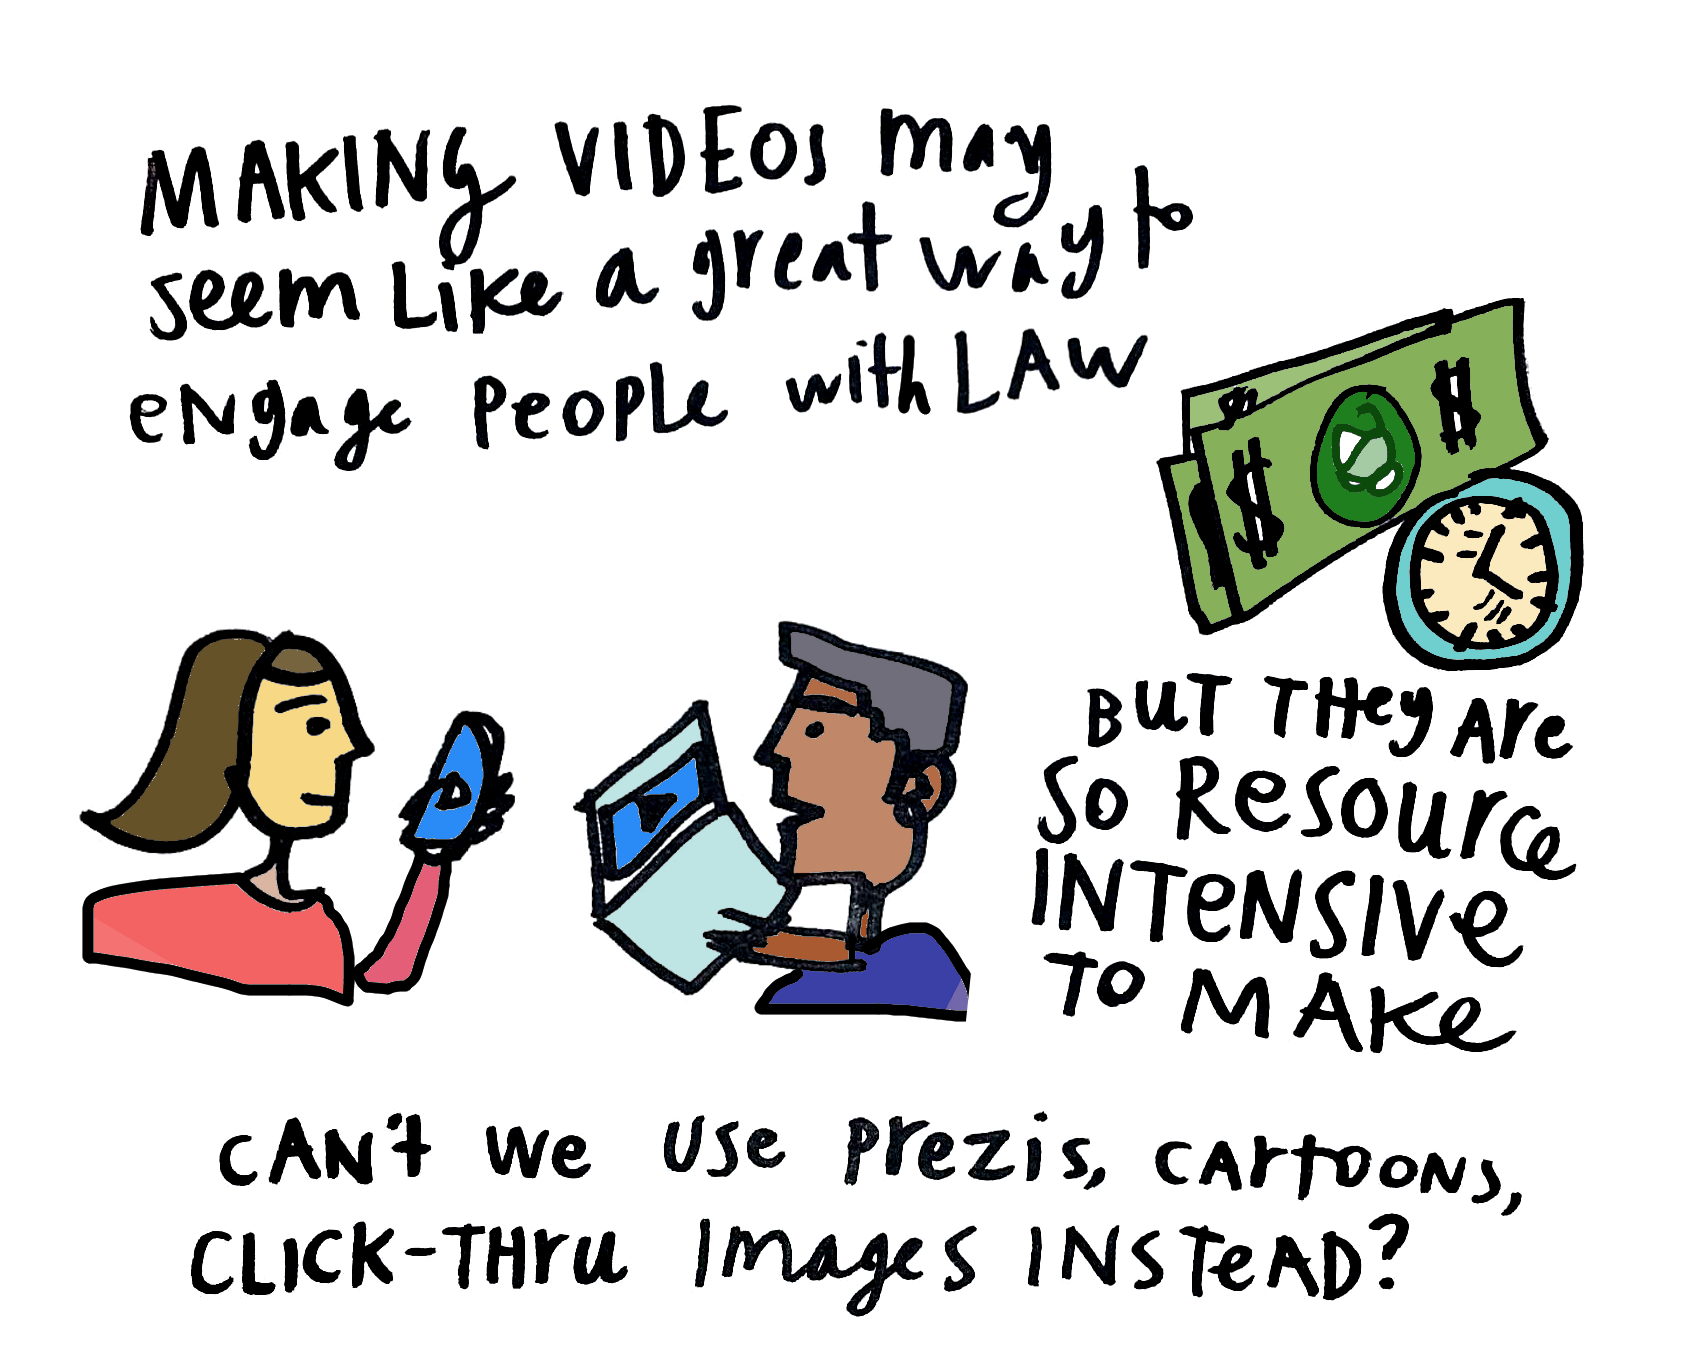 Visual Law Meetup takeaways - videos are hard to make - what can we make instead